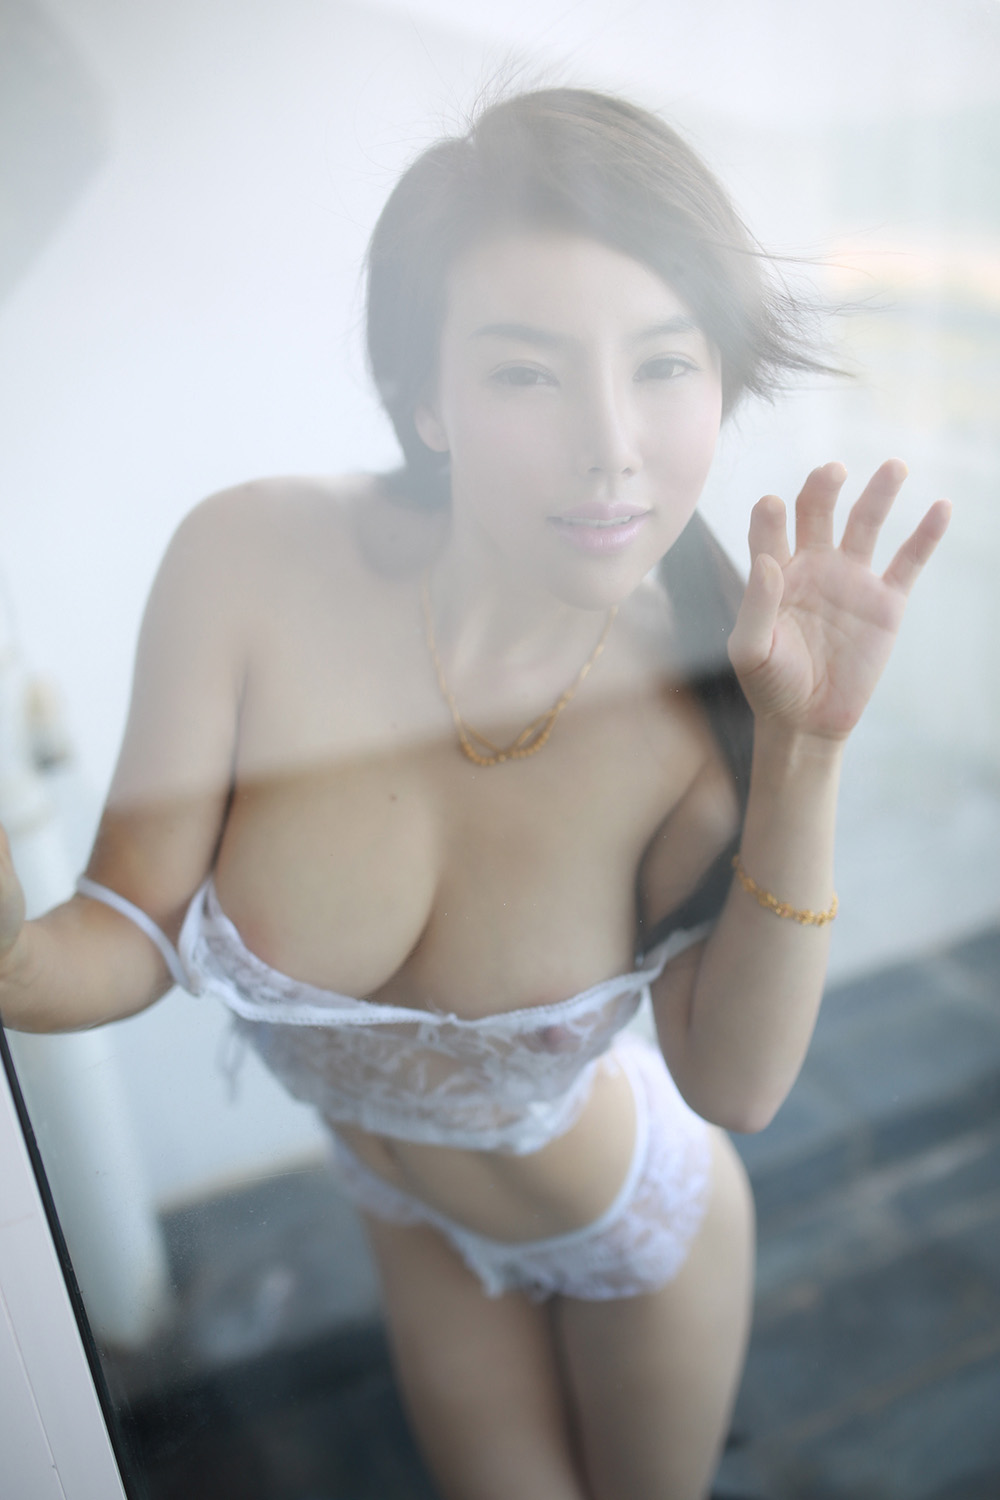 660A1340 - MYGIRL NO.27 Photo Nude Hot